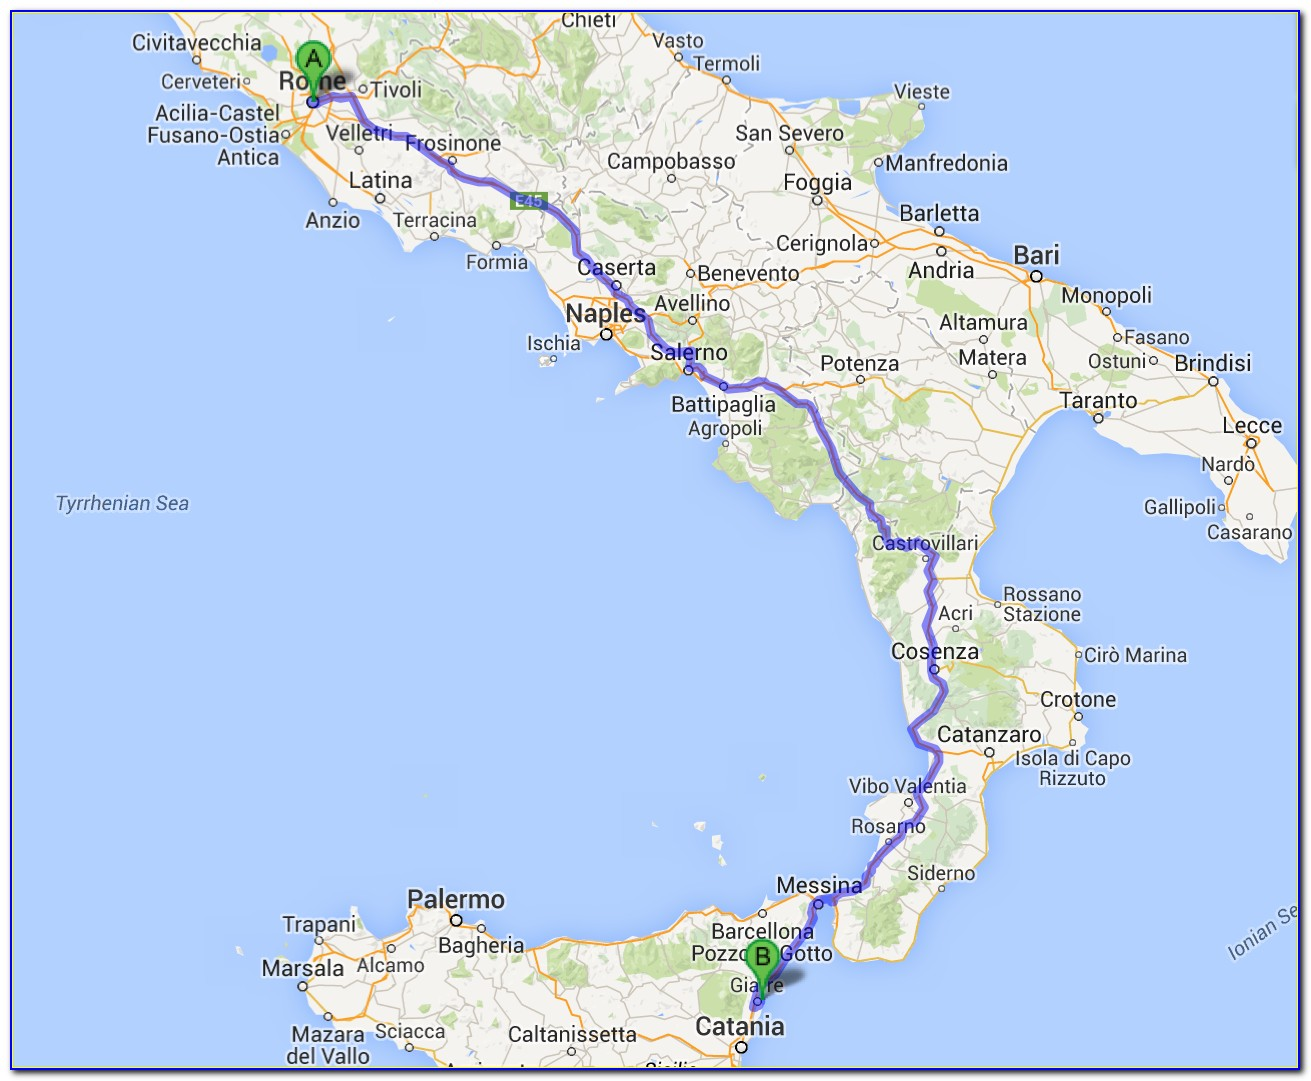 Michelin Road Map Of Sicily